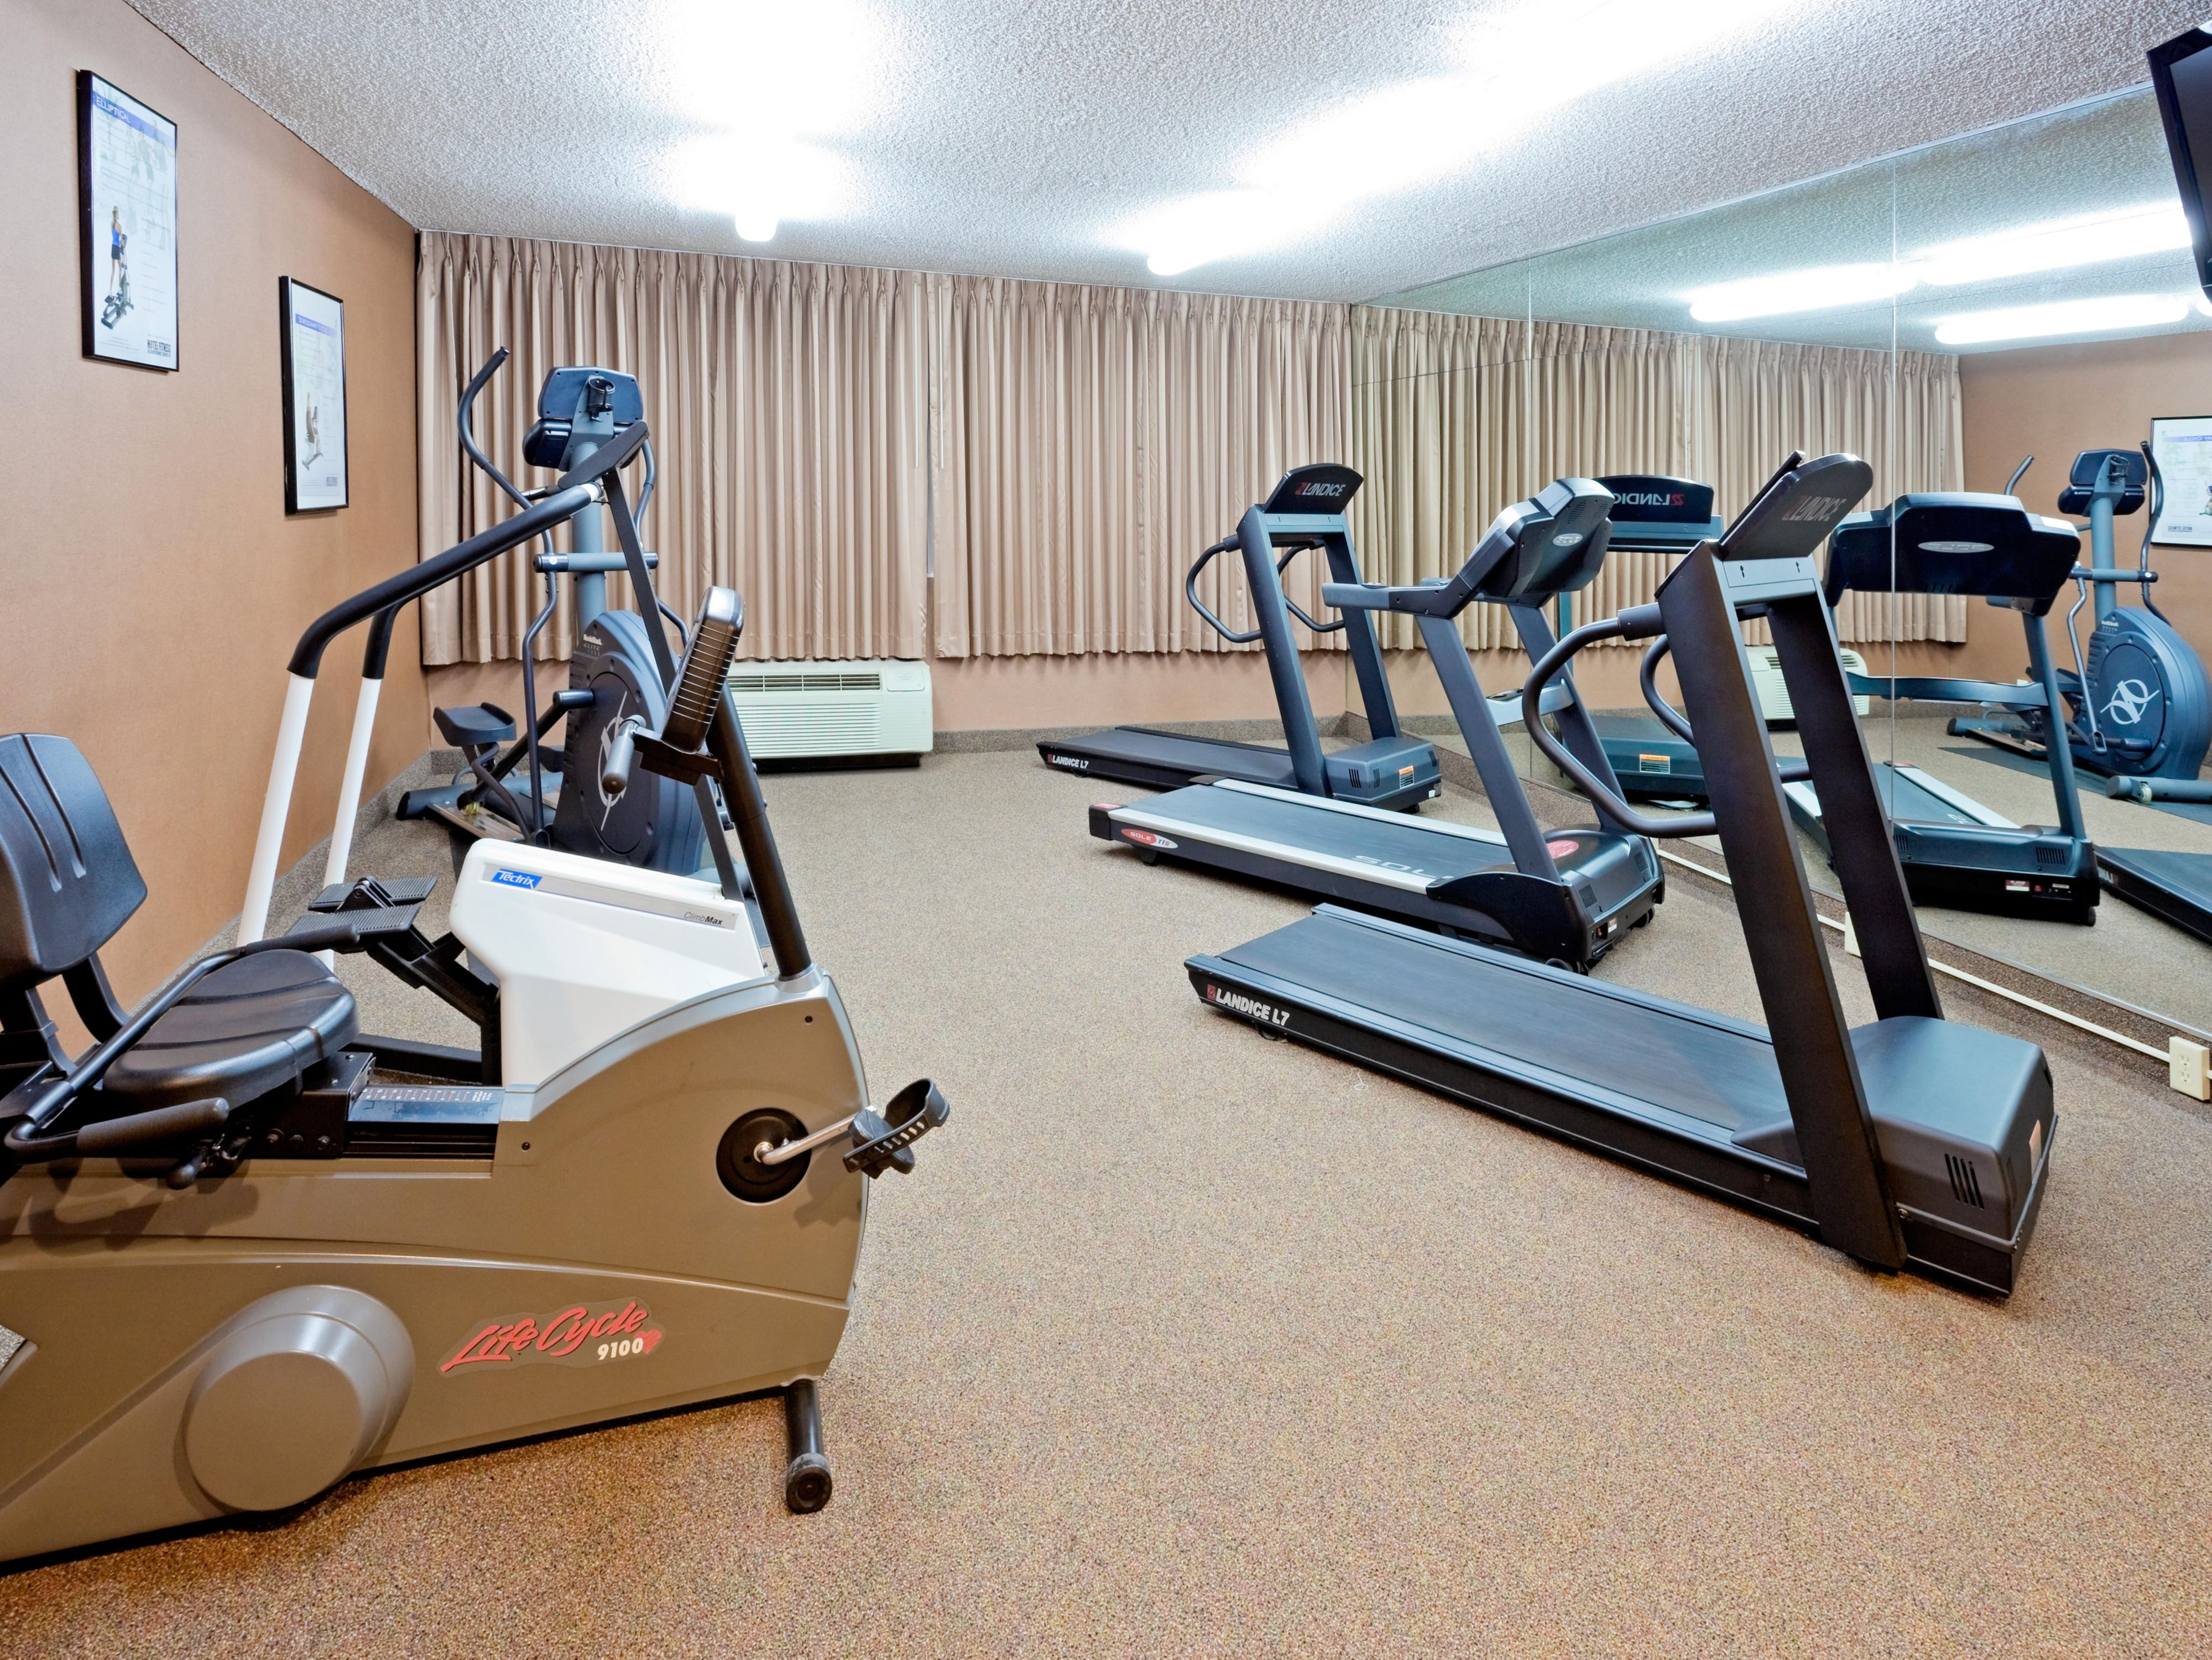 Pick your choice of equipment to satisfy your exercising needs